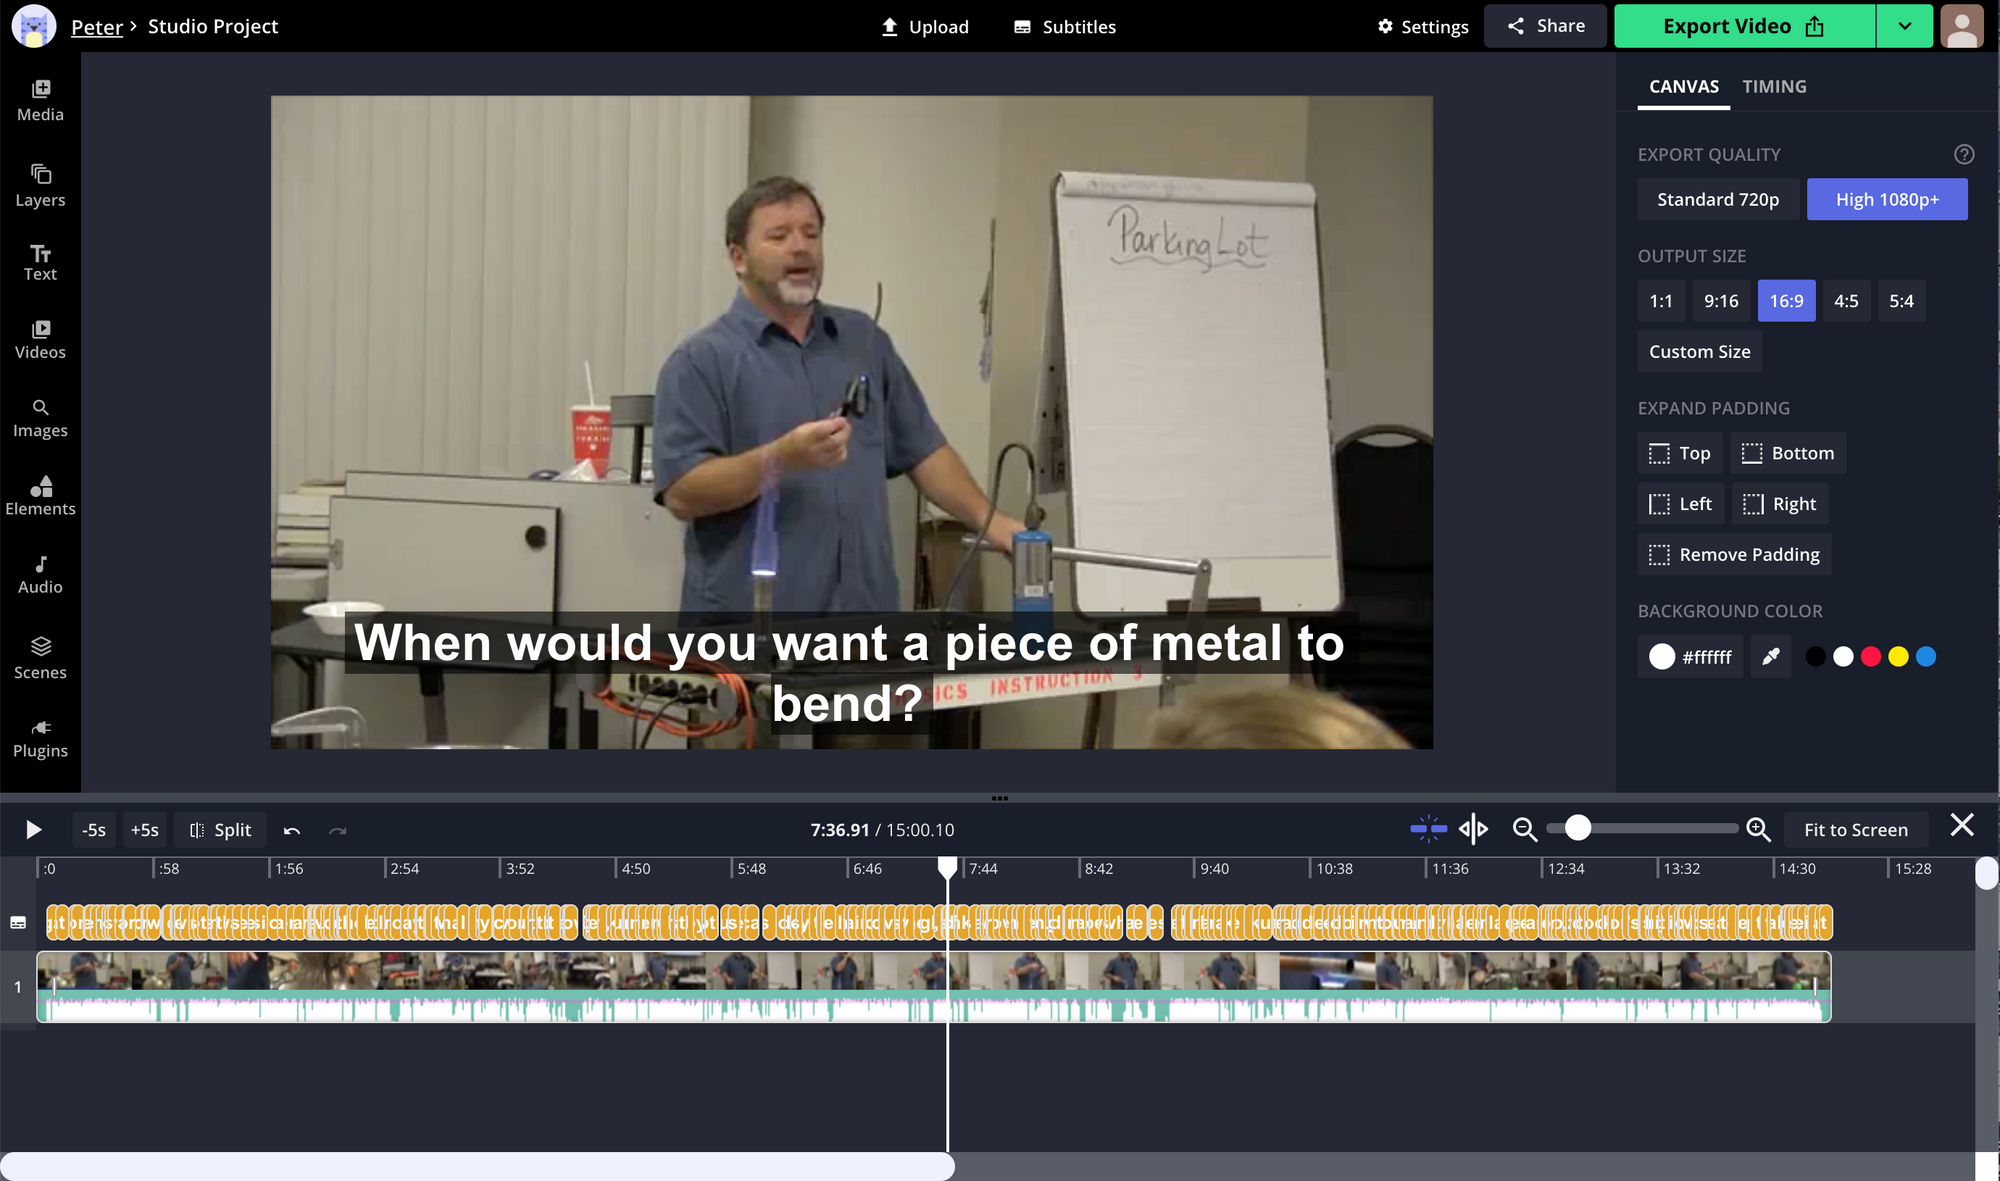 A screenshot of subtitles being added to a lecture recording in the Kapwing Studio.